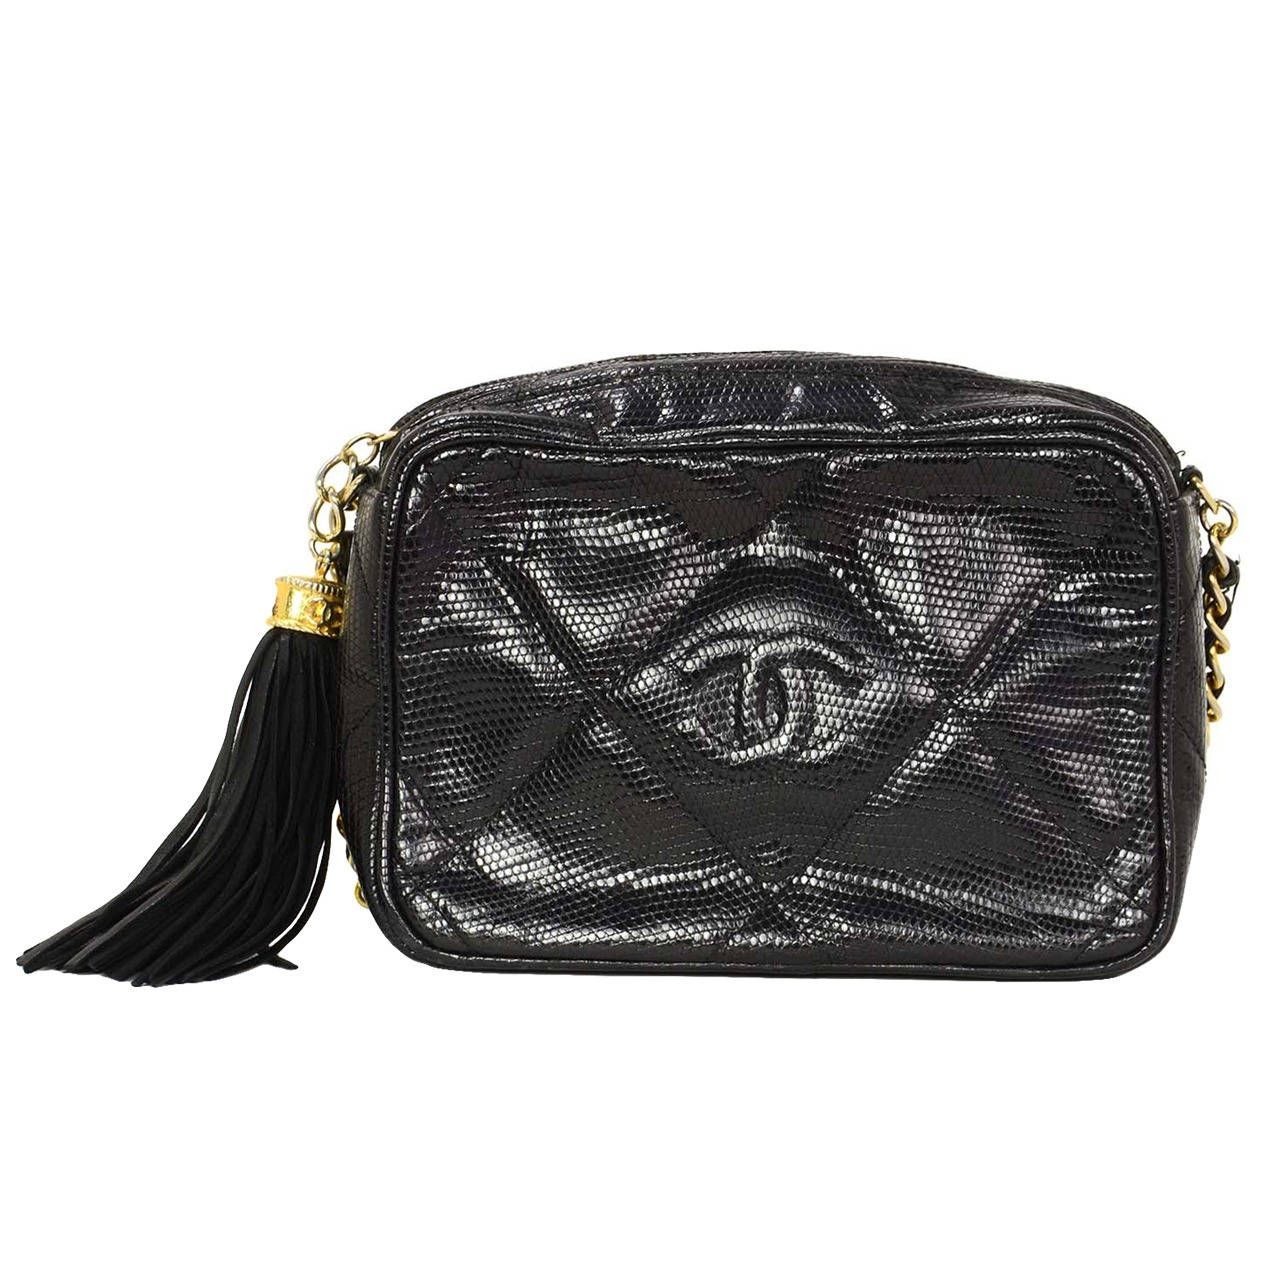 22dd06fd345ccb CHANEL '80s Vintage Black Lizard Quilted Camera Bag w/ Tassel GHW | From a